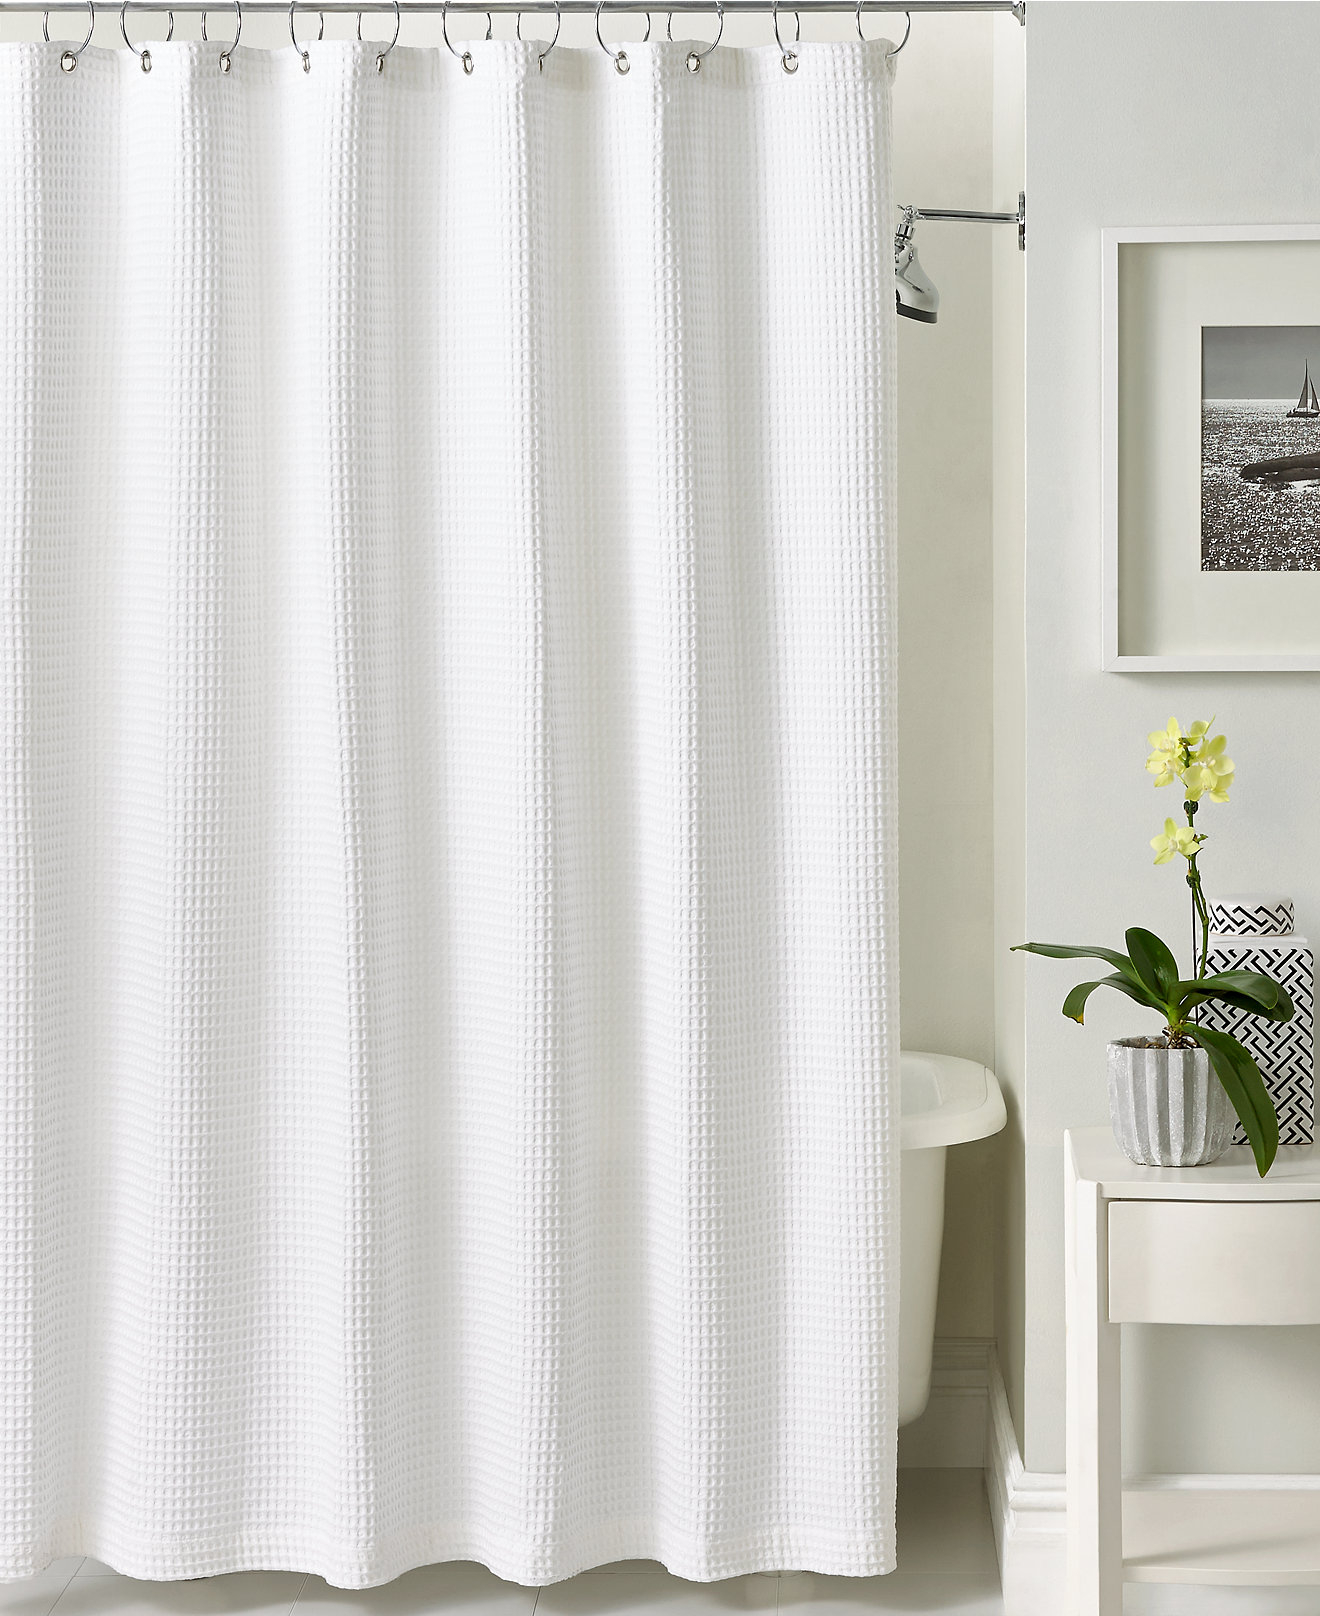 Bed Bath And Beyond Hotel Shower Curtain Liner | Gopelling.net